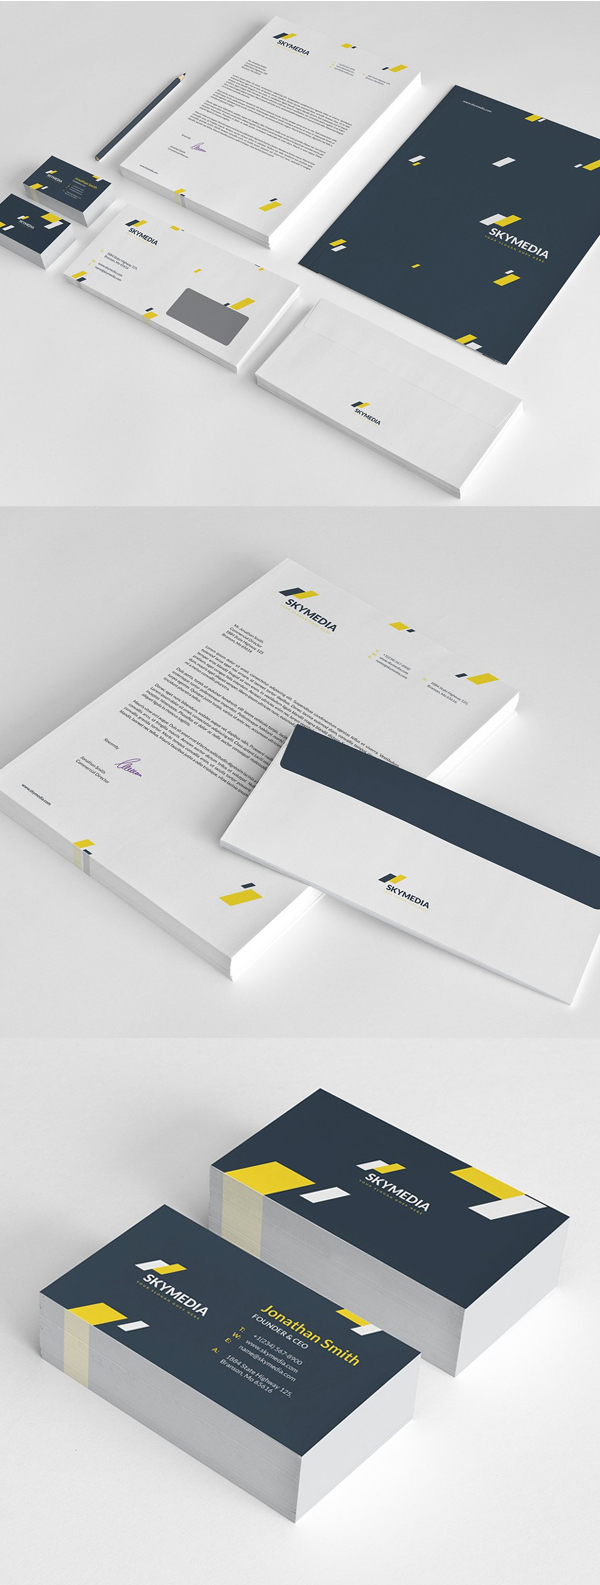 Corporate branding stationery templates design graphic design corporate stationery template pack friedricerecipe Images